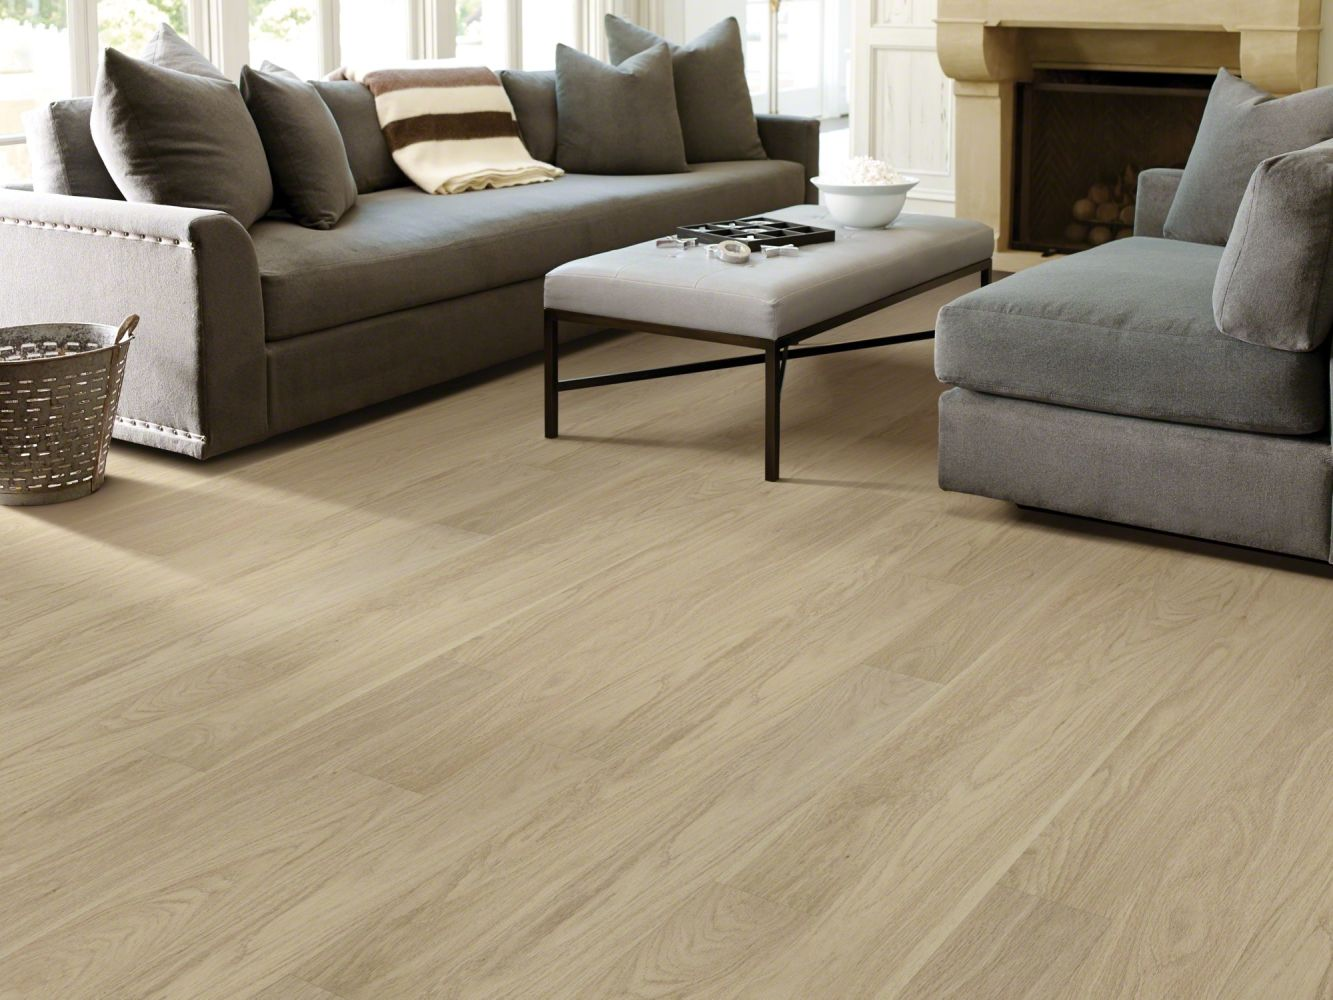 Shaw Floors Vinyl Residential Palatino Plus Stadium 00155_2801V